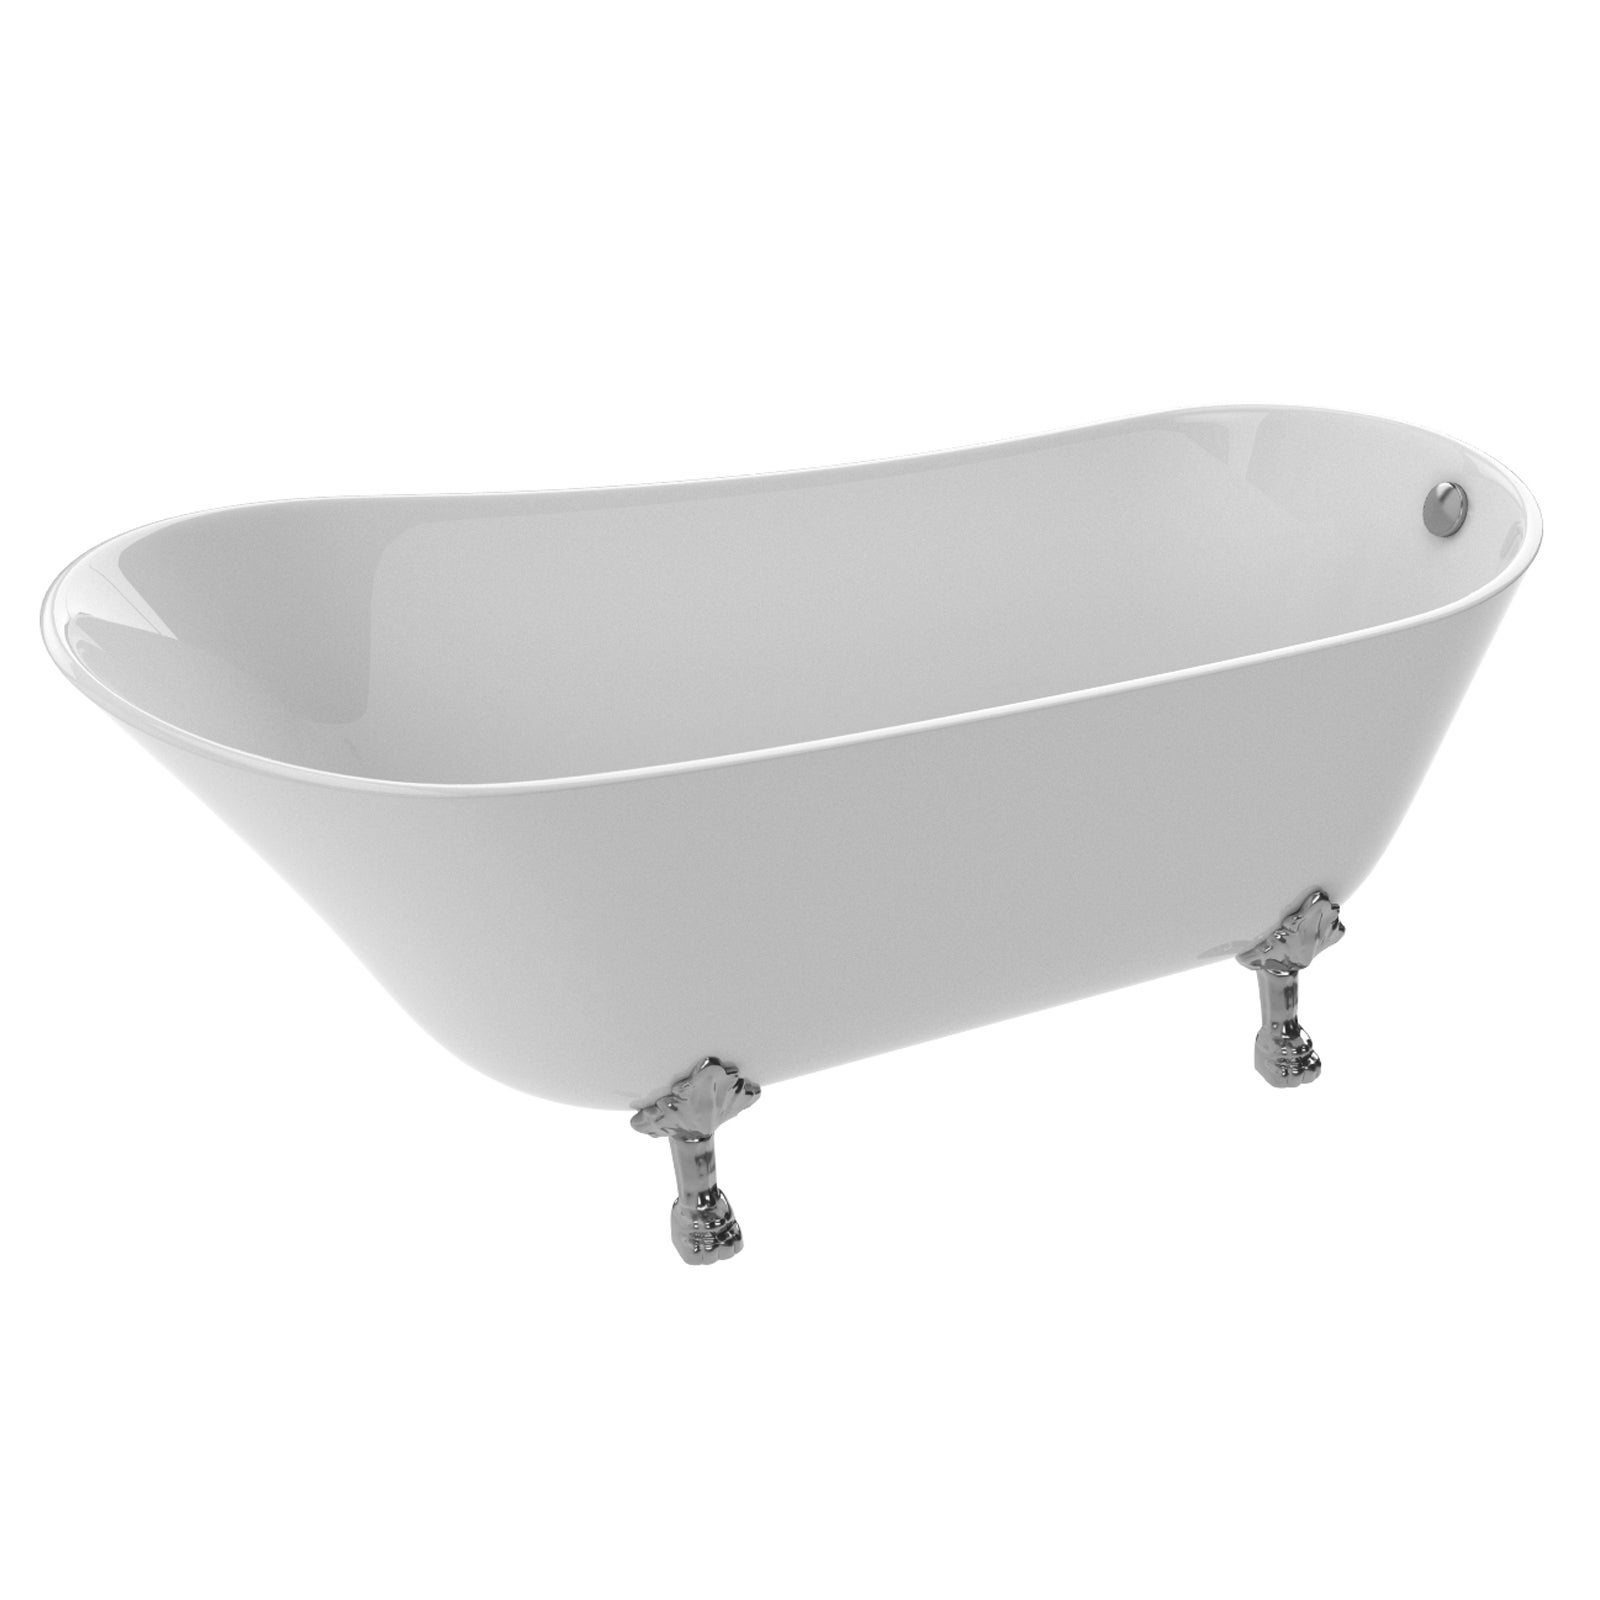 55 inch clawfoot tub. Anzzi Legion Series 5 foot Acrylic Clawfoot Soaking Bat  55 inch clawfoot tub Plumbing Fixtures Compare Prices at Nextag